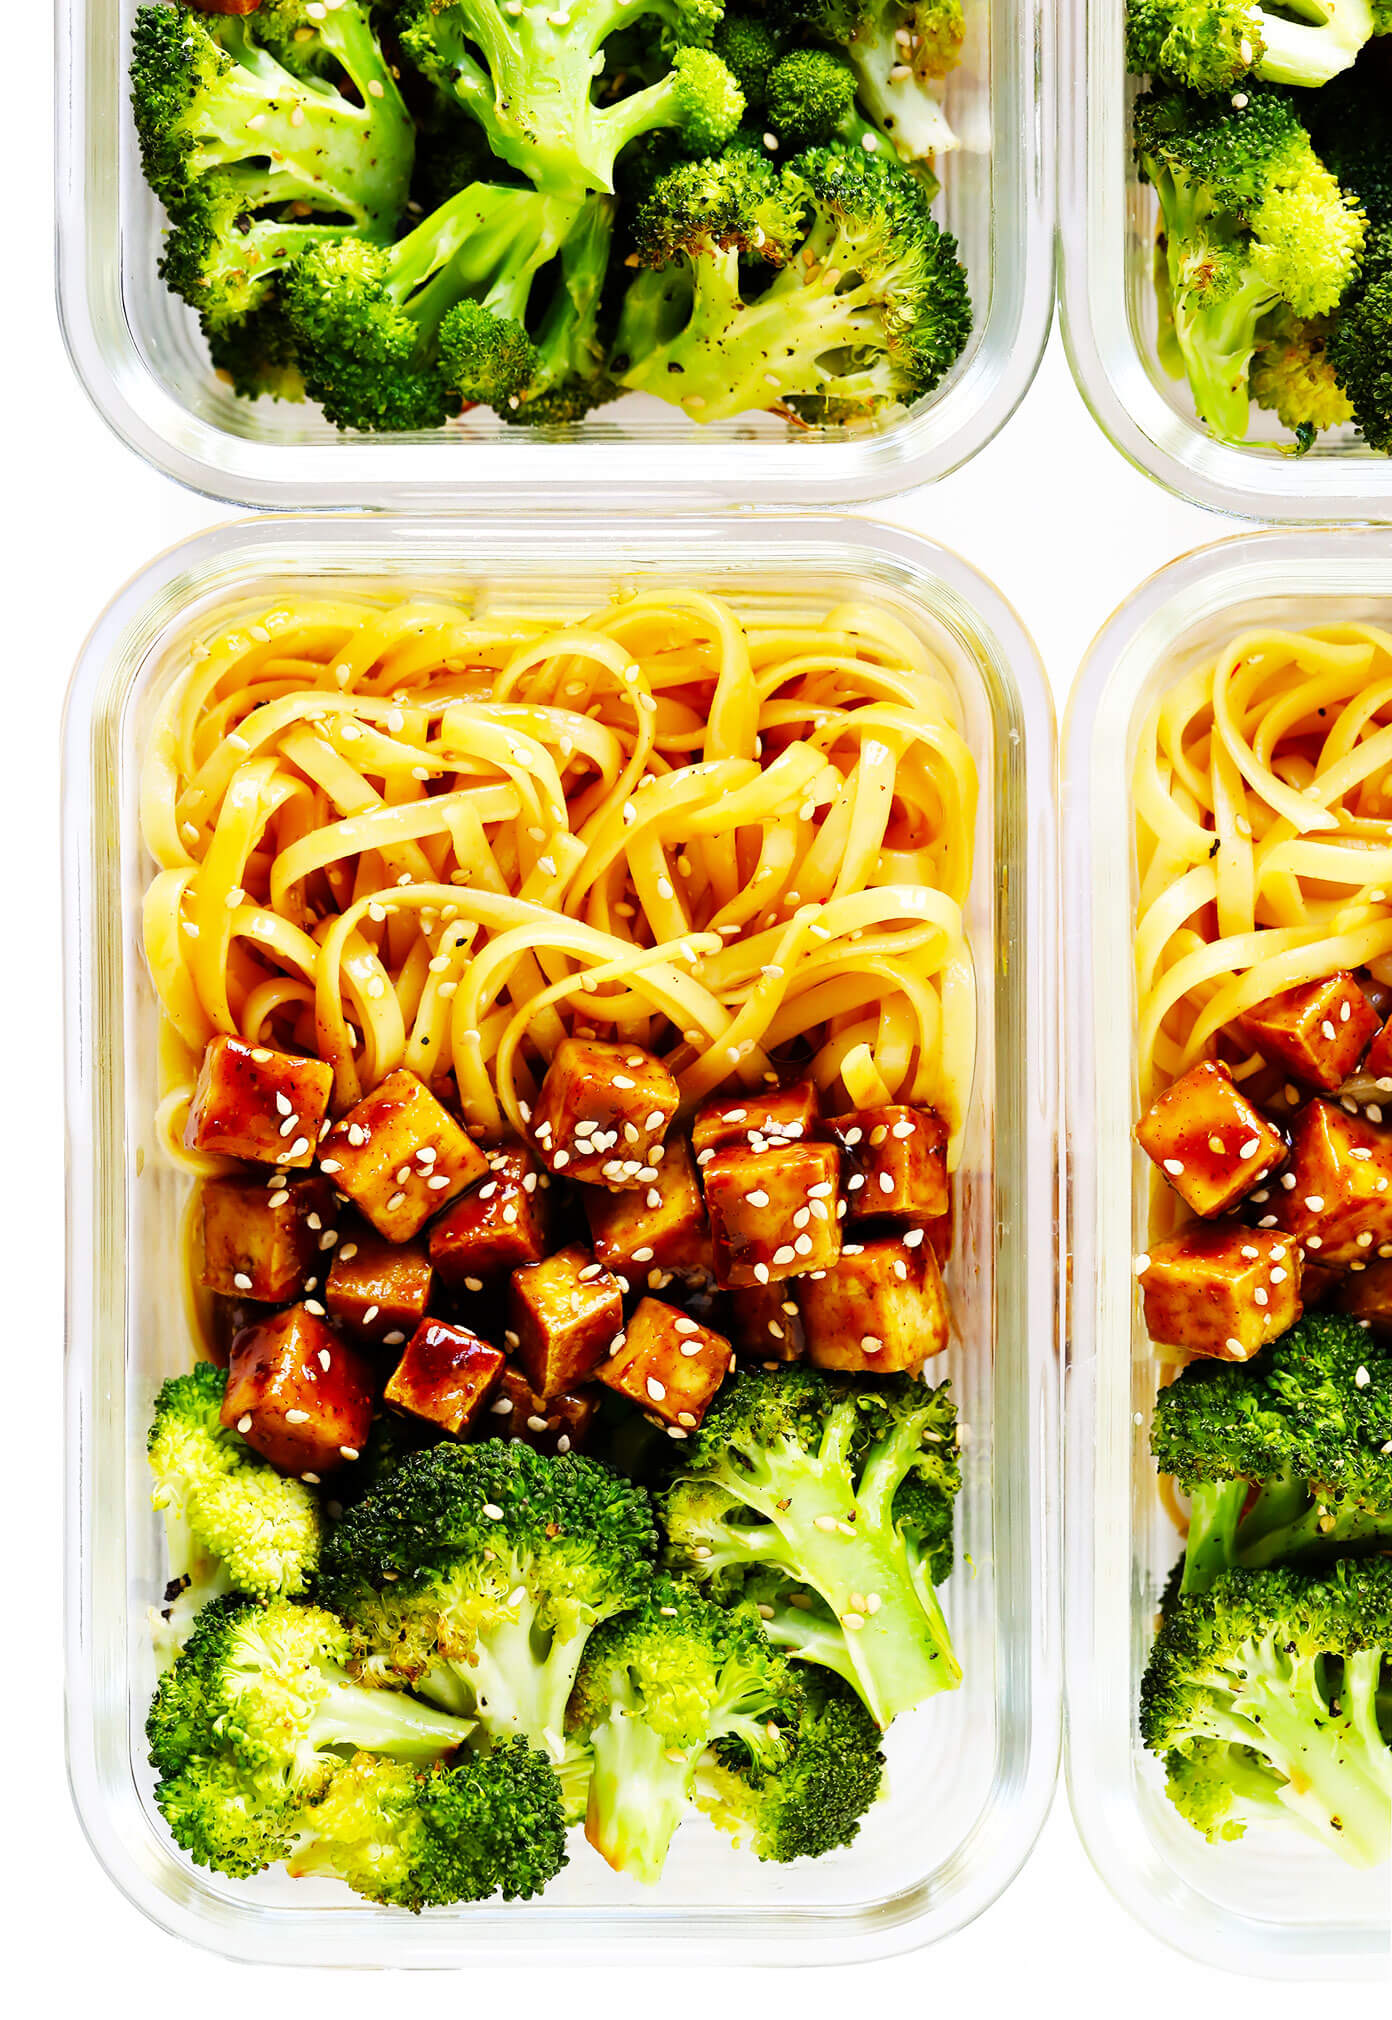 Five Spice Tofu Sesame Noodle Bowls with Roasted Broccoli in Meal Prep Containers